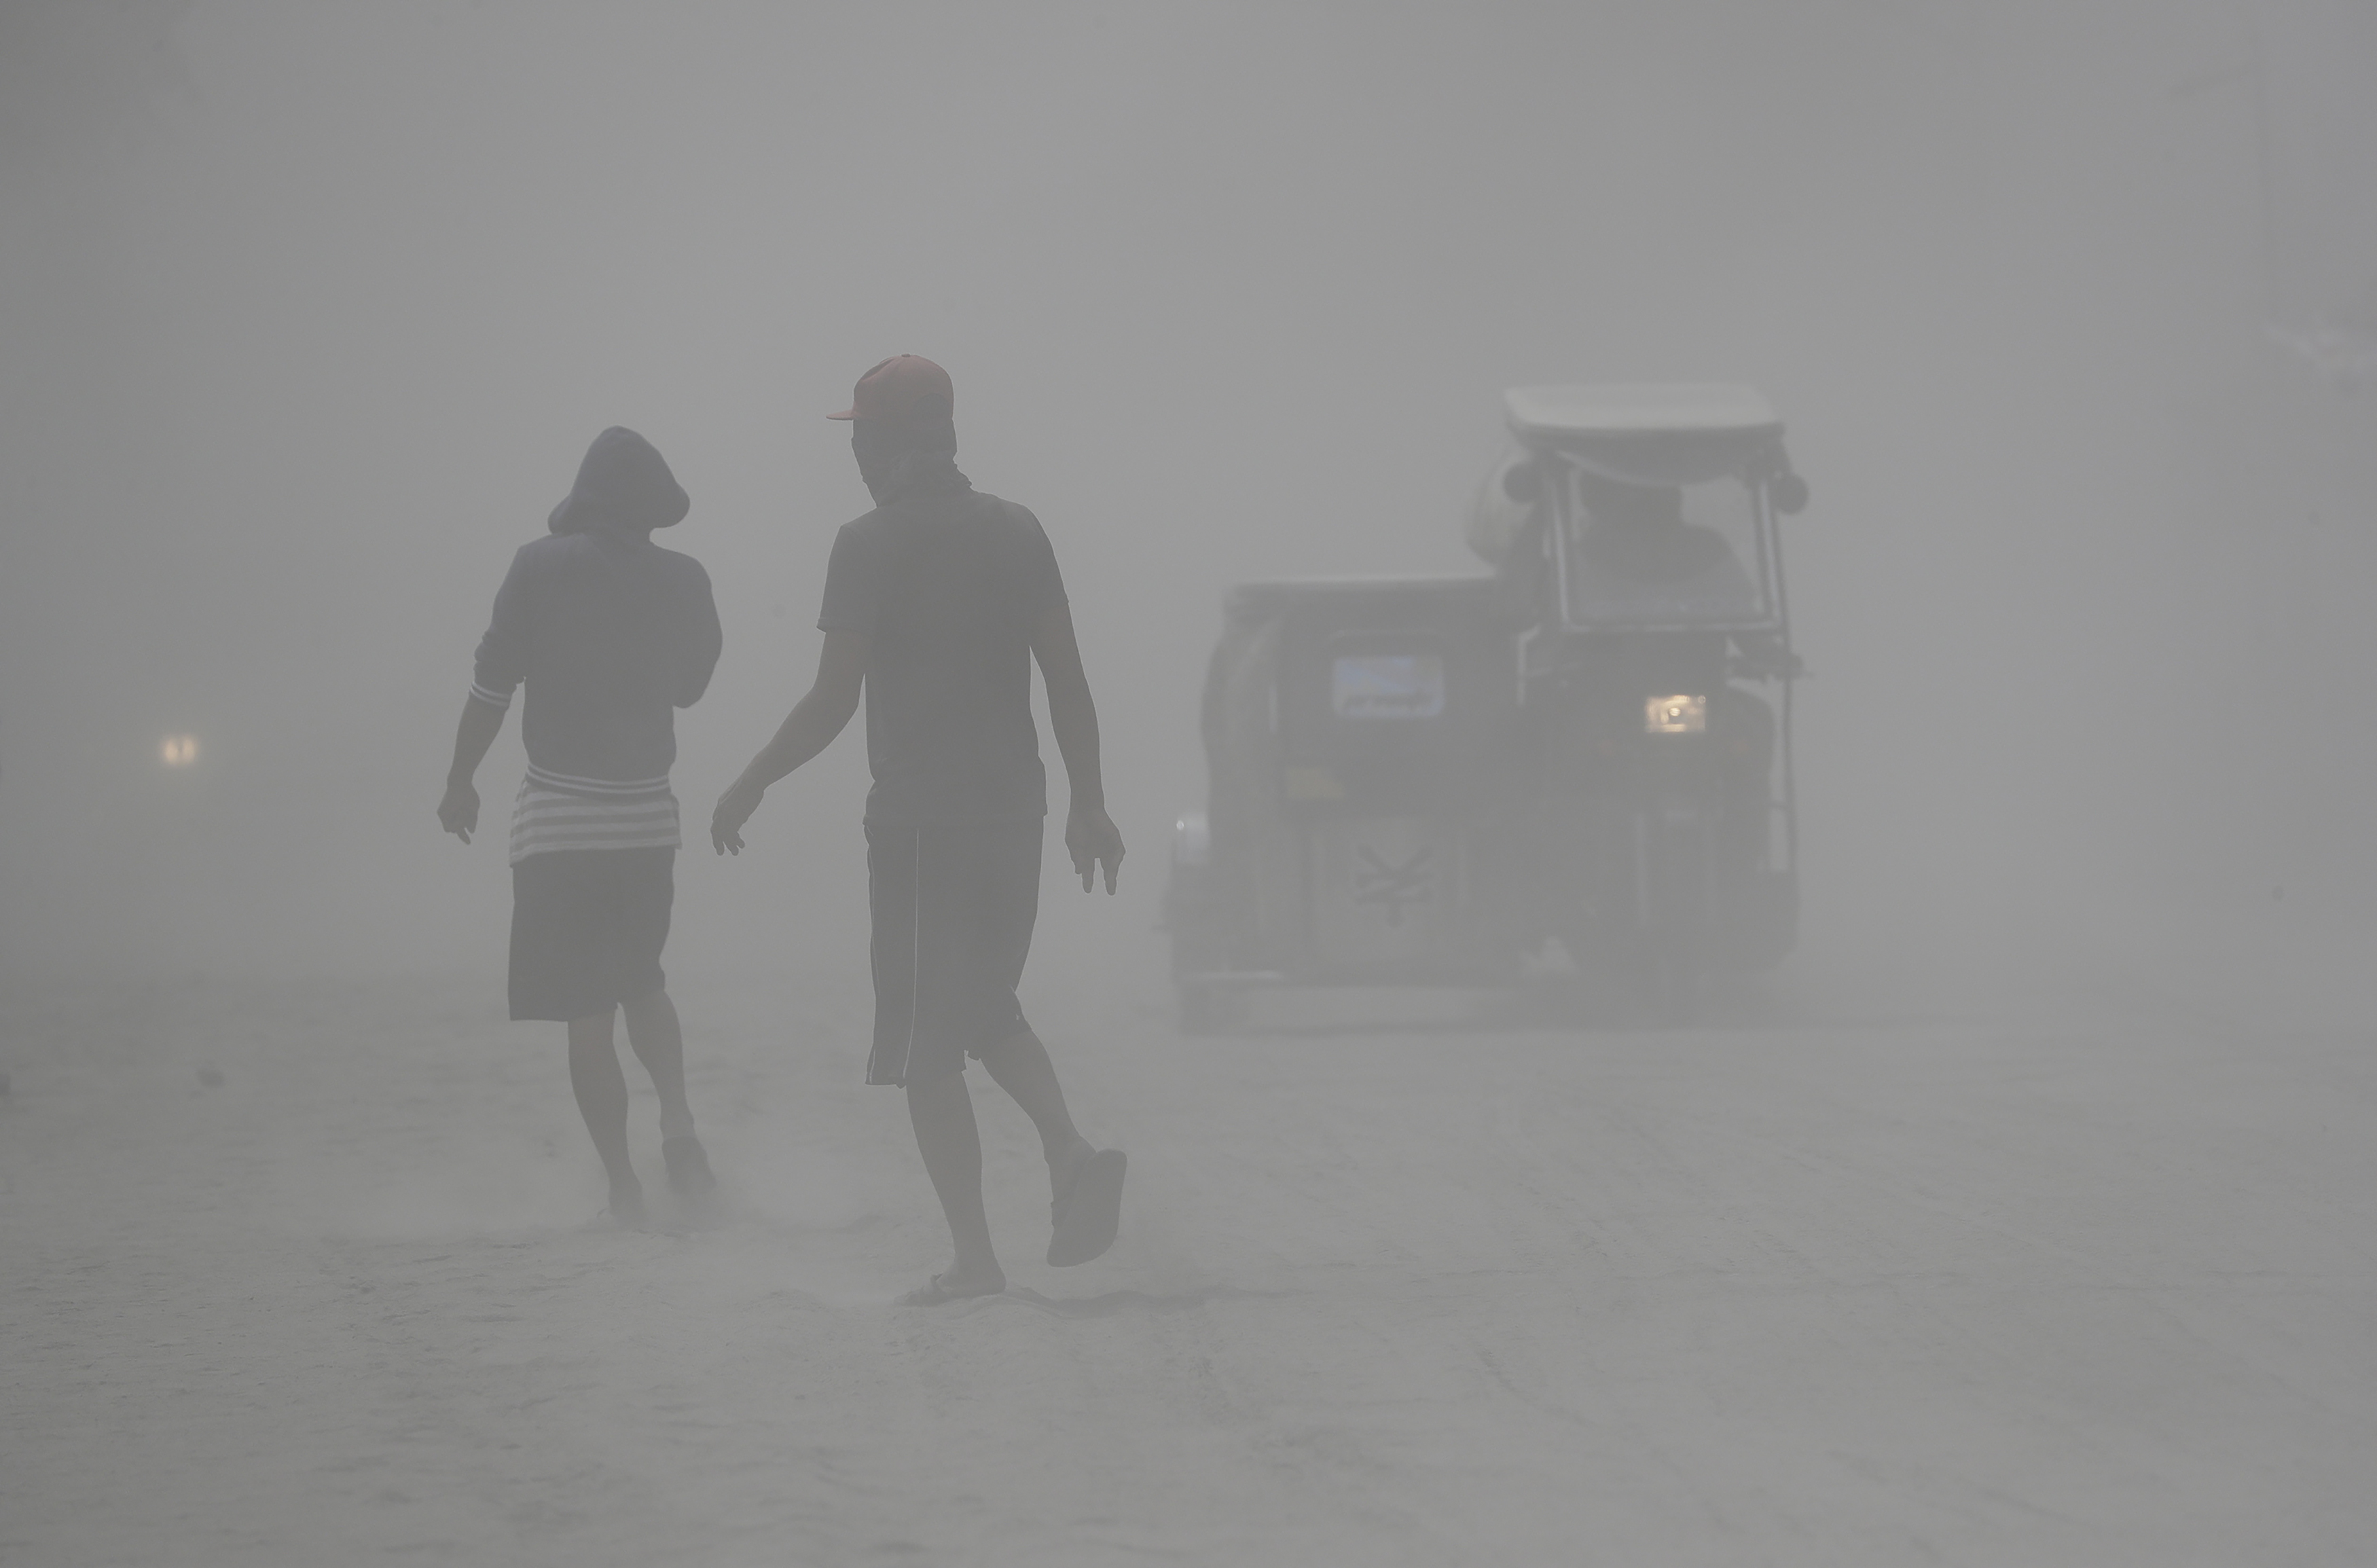 Residents walk in a cloud of ash as Taal Volcano continues to spew ash on Monday Jan. 13, 2020, in Tagaytay, Cavite province, south of Manila, Philippines. Red-hot lava gushed out of the Philippine volcano Monday after a sudden eruption of ash and steam that forced villagers to flee en masse and shut down Manila's international airport, offices and schools.